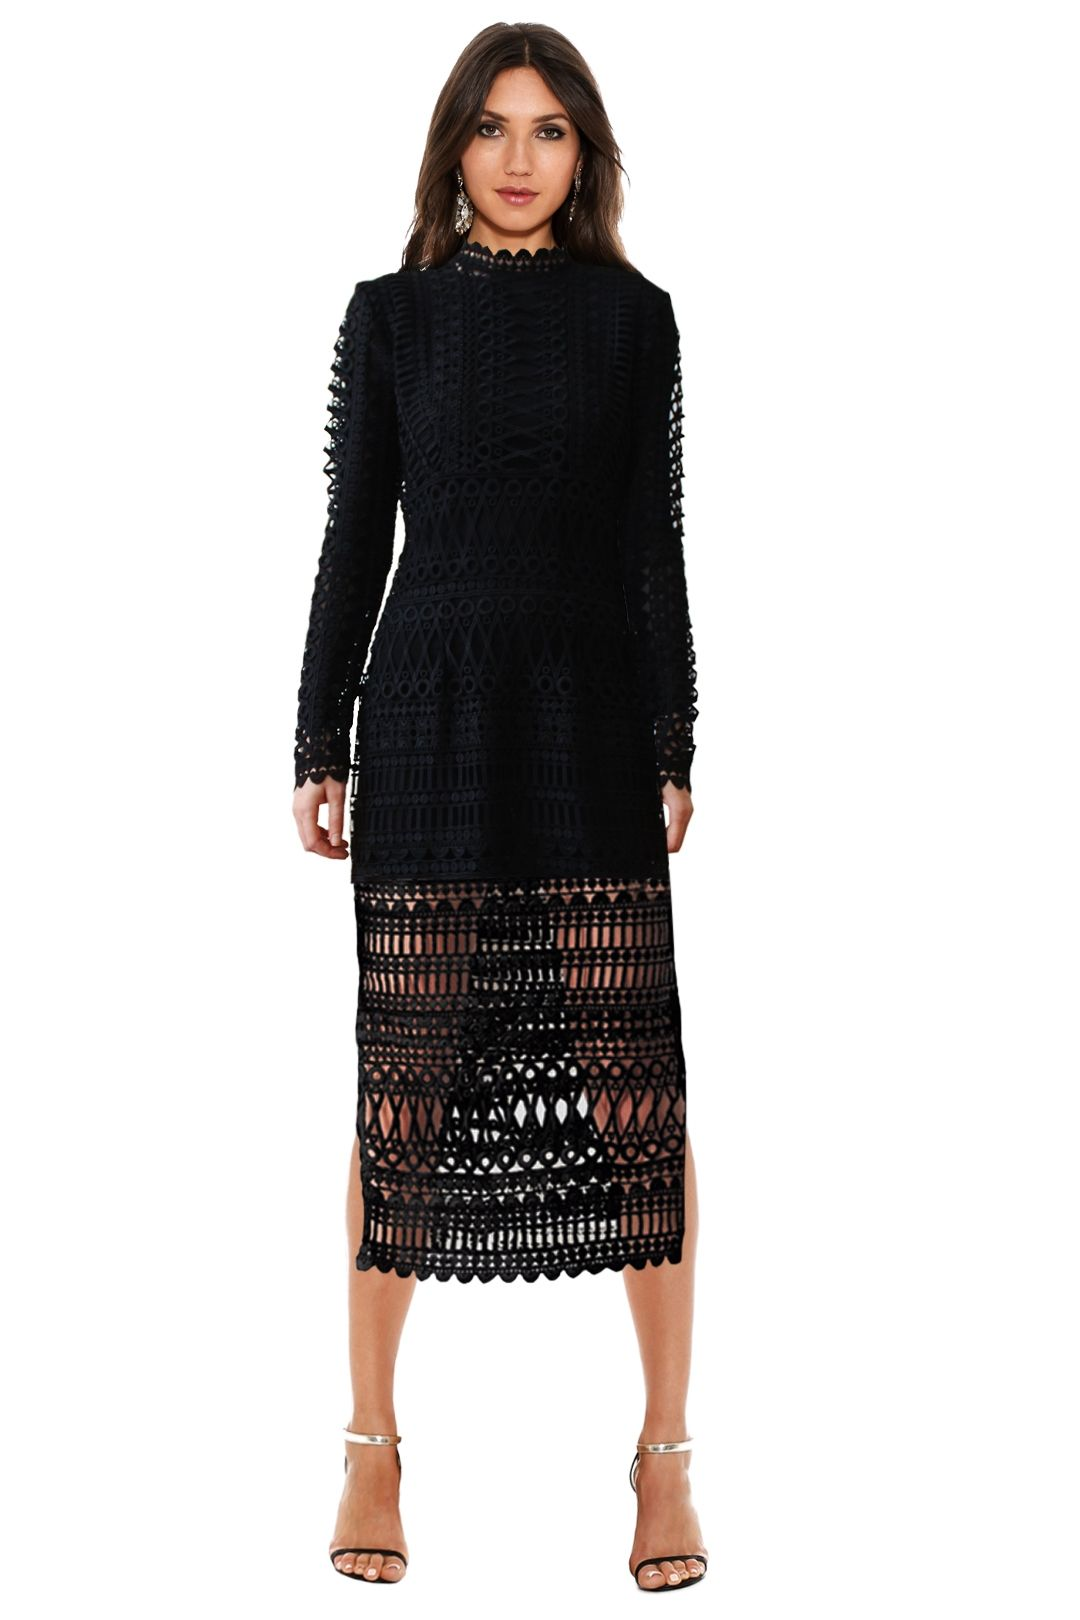 Shakuhachi - Lace Borders Midi Dress - Black - Front